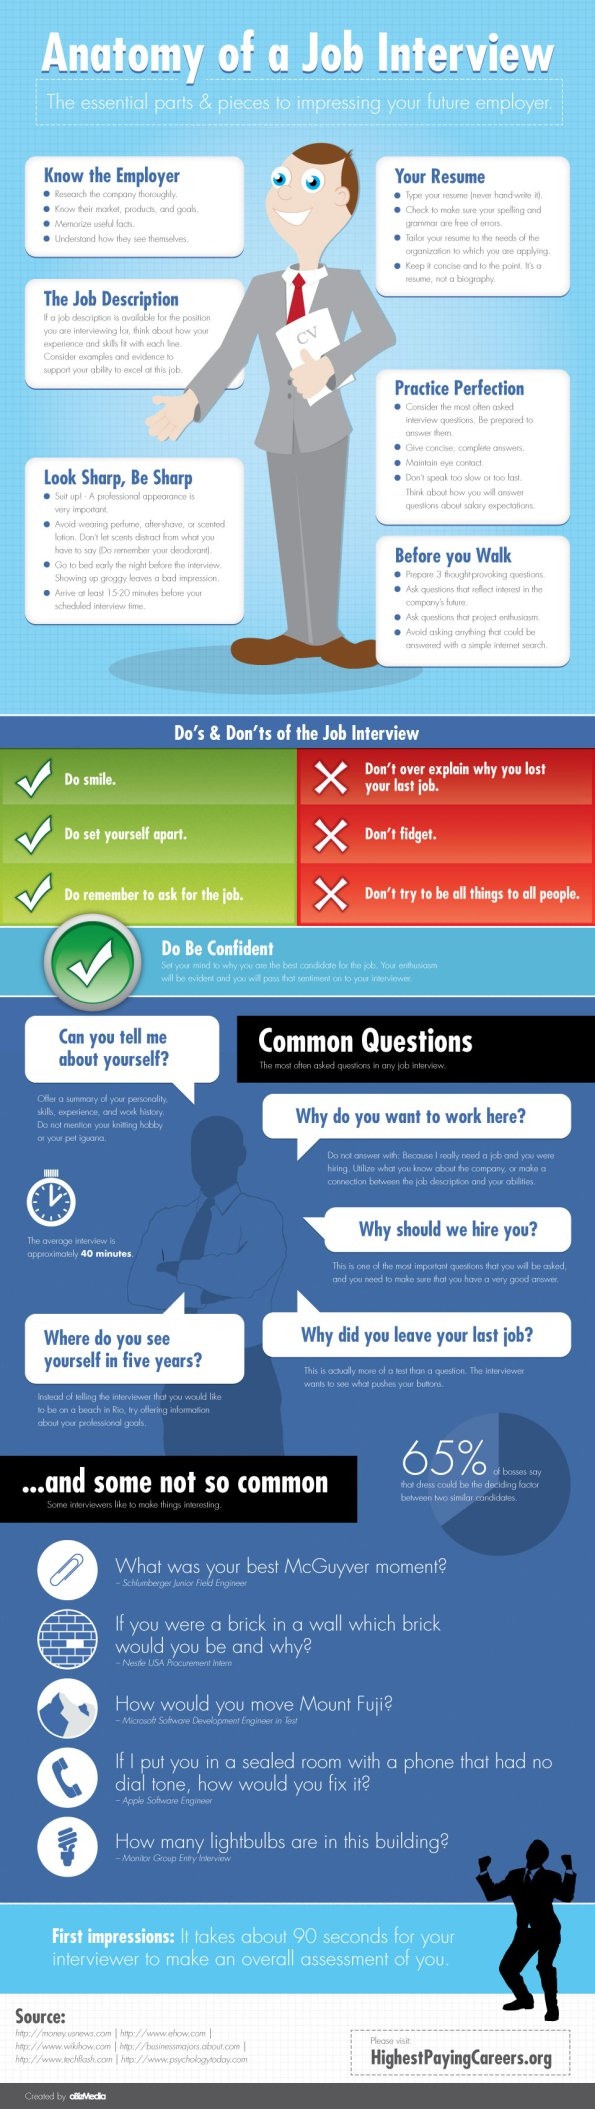 Anatomy of a Job Interview tips